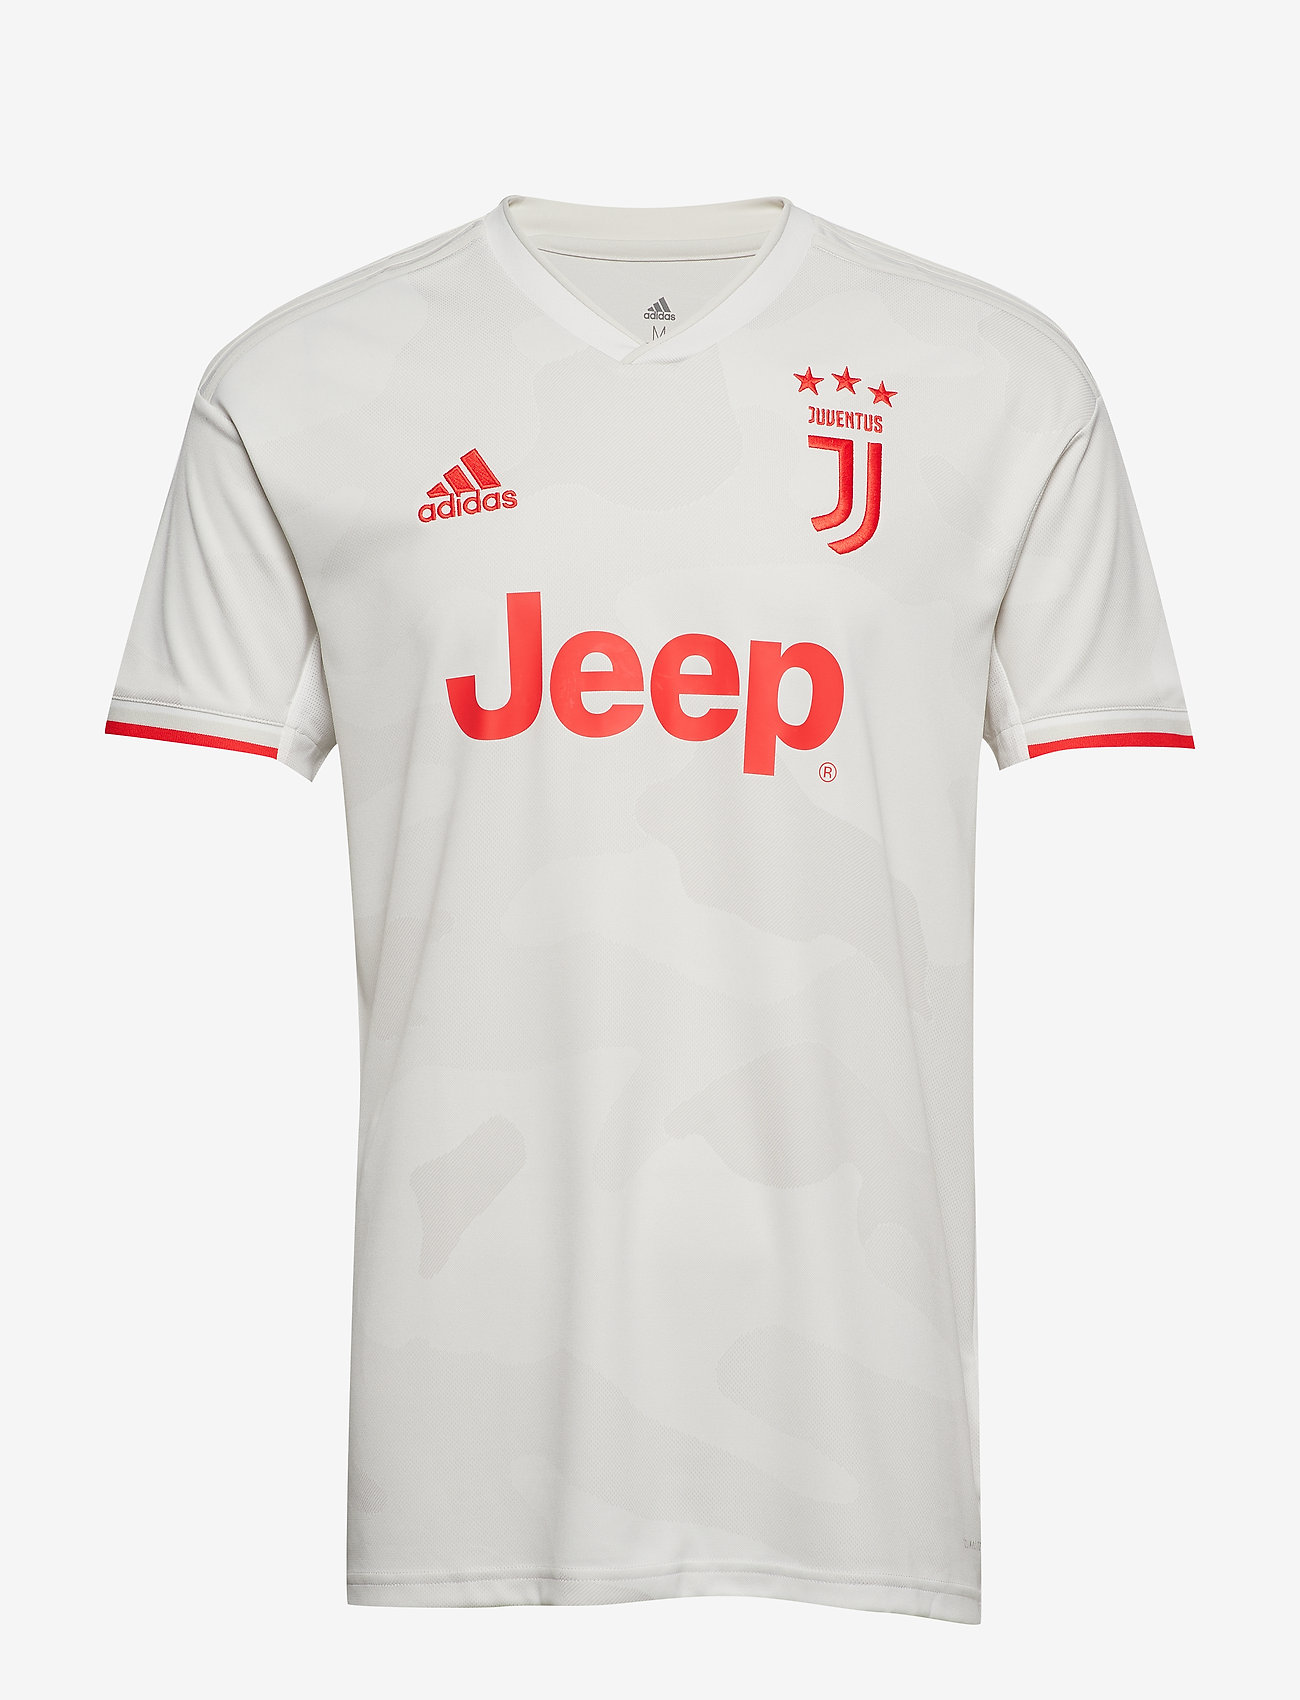 adidas Performance - JUVE A JSY - football shirts - cwhite/rawwht - 1